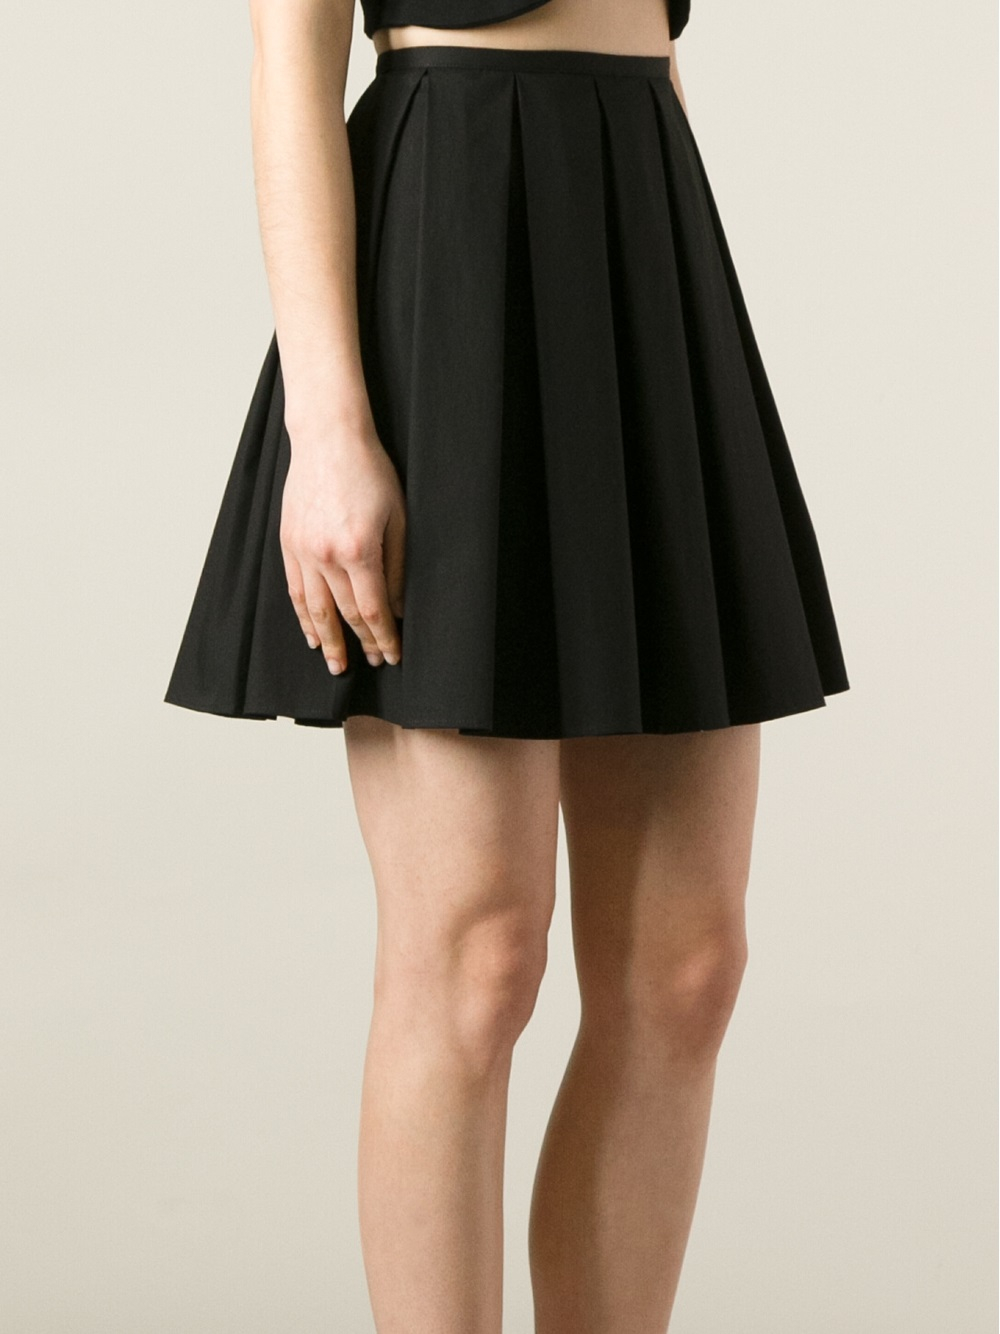 Black Pleated Skirt: Perfect To Add In Wardrobe